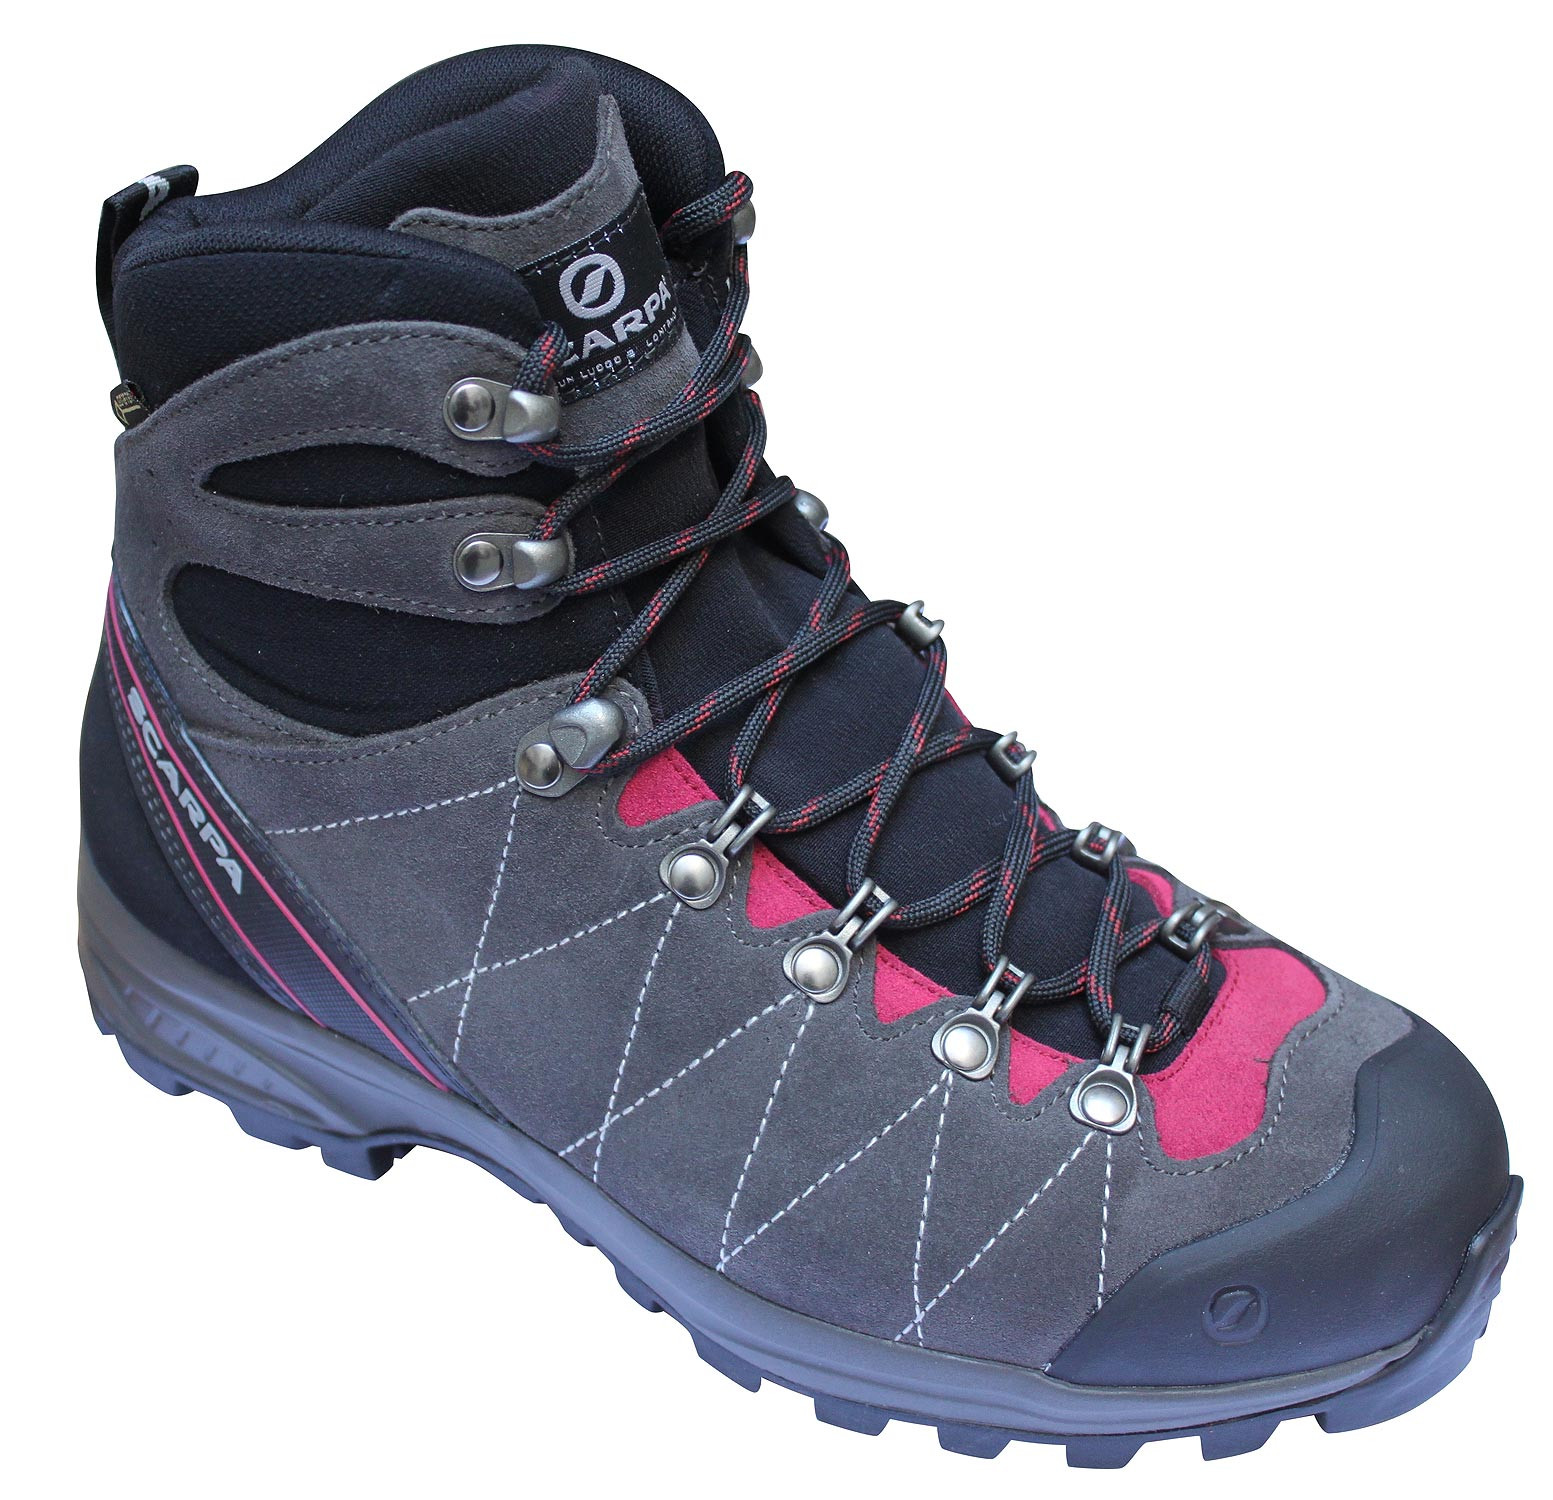 Scarpa R Evolution 2 GTX Women